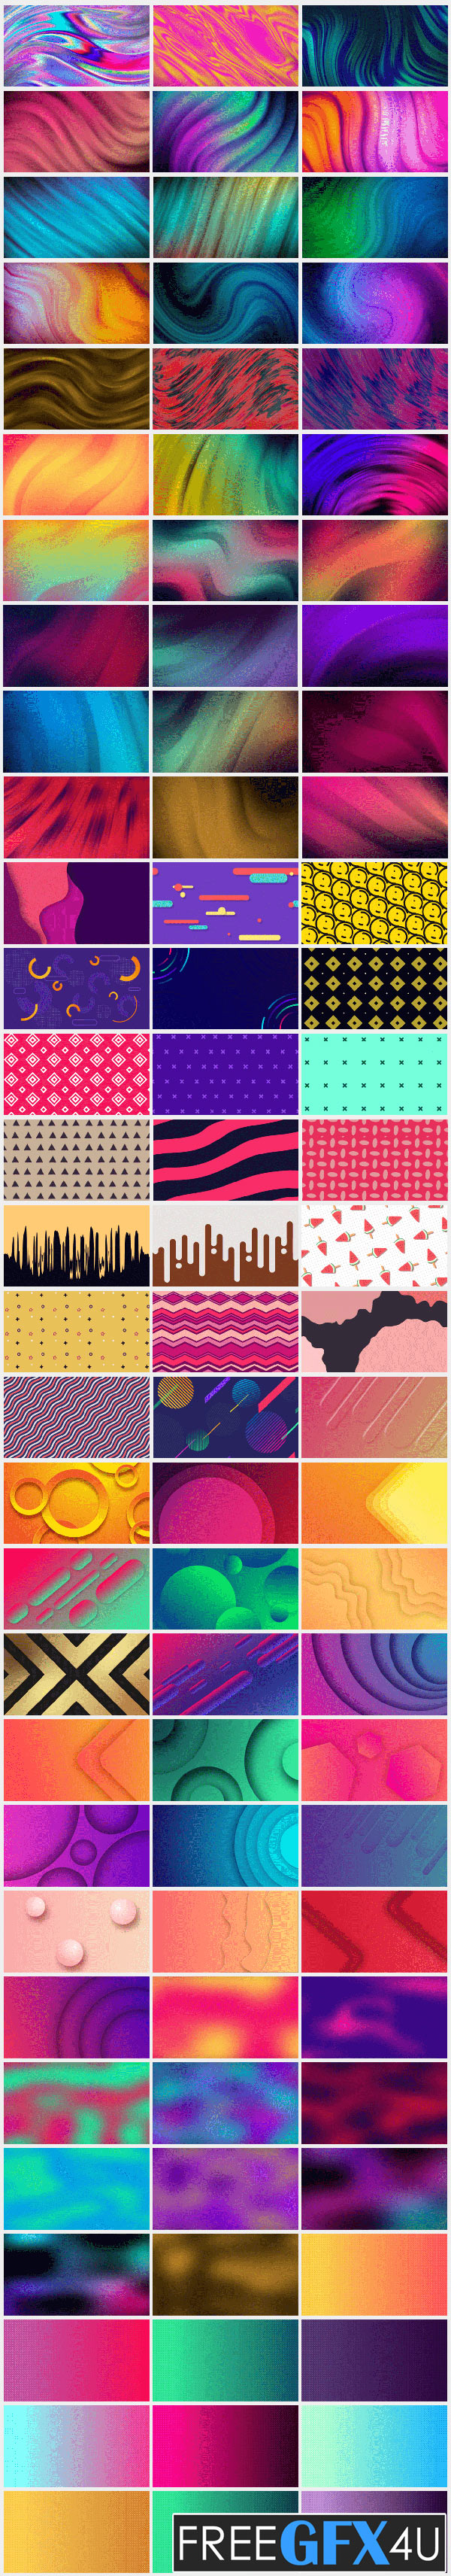 85+ Creative Backgrounds